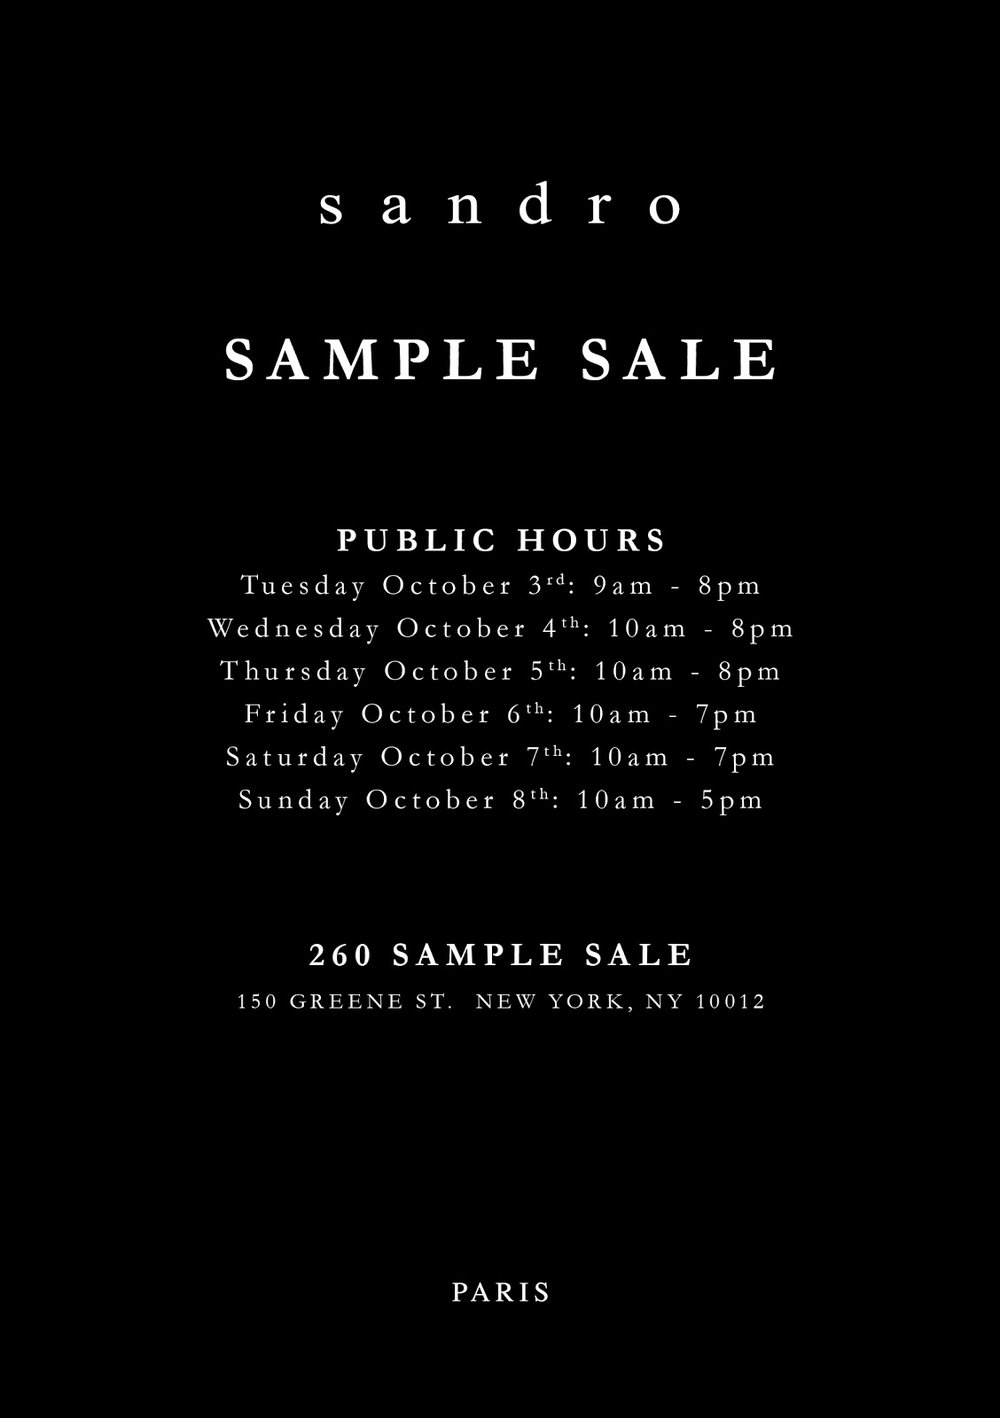 Sandro 260 Sample Sale Fall Evite Public.jpg